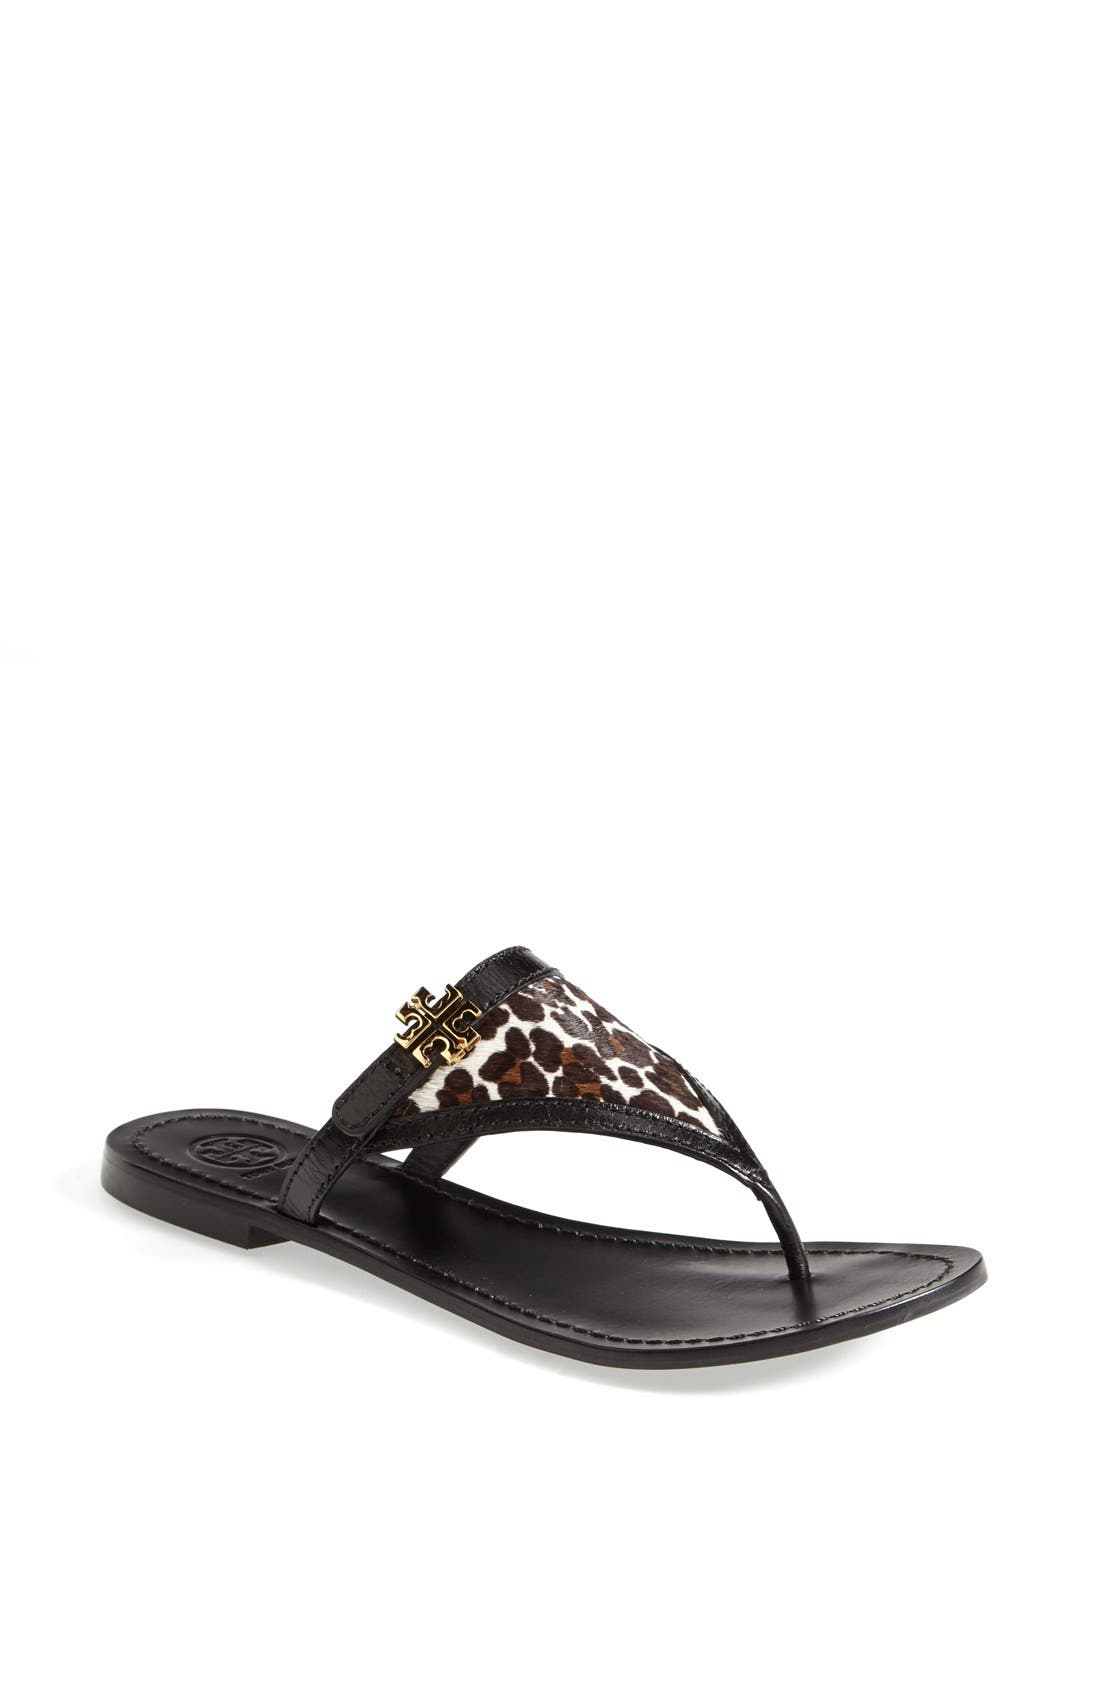 Main Image - Tory Burch 'Eloise' Flat Thong Sandal (Nordstrom Exclusive) (Women)